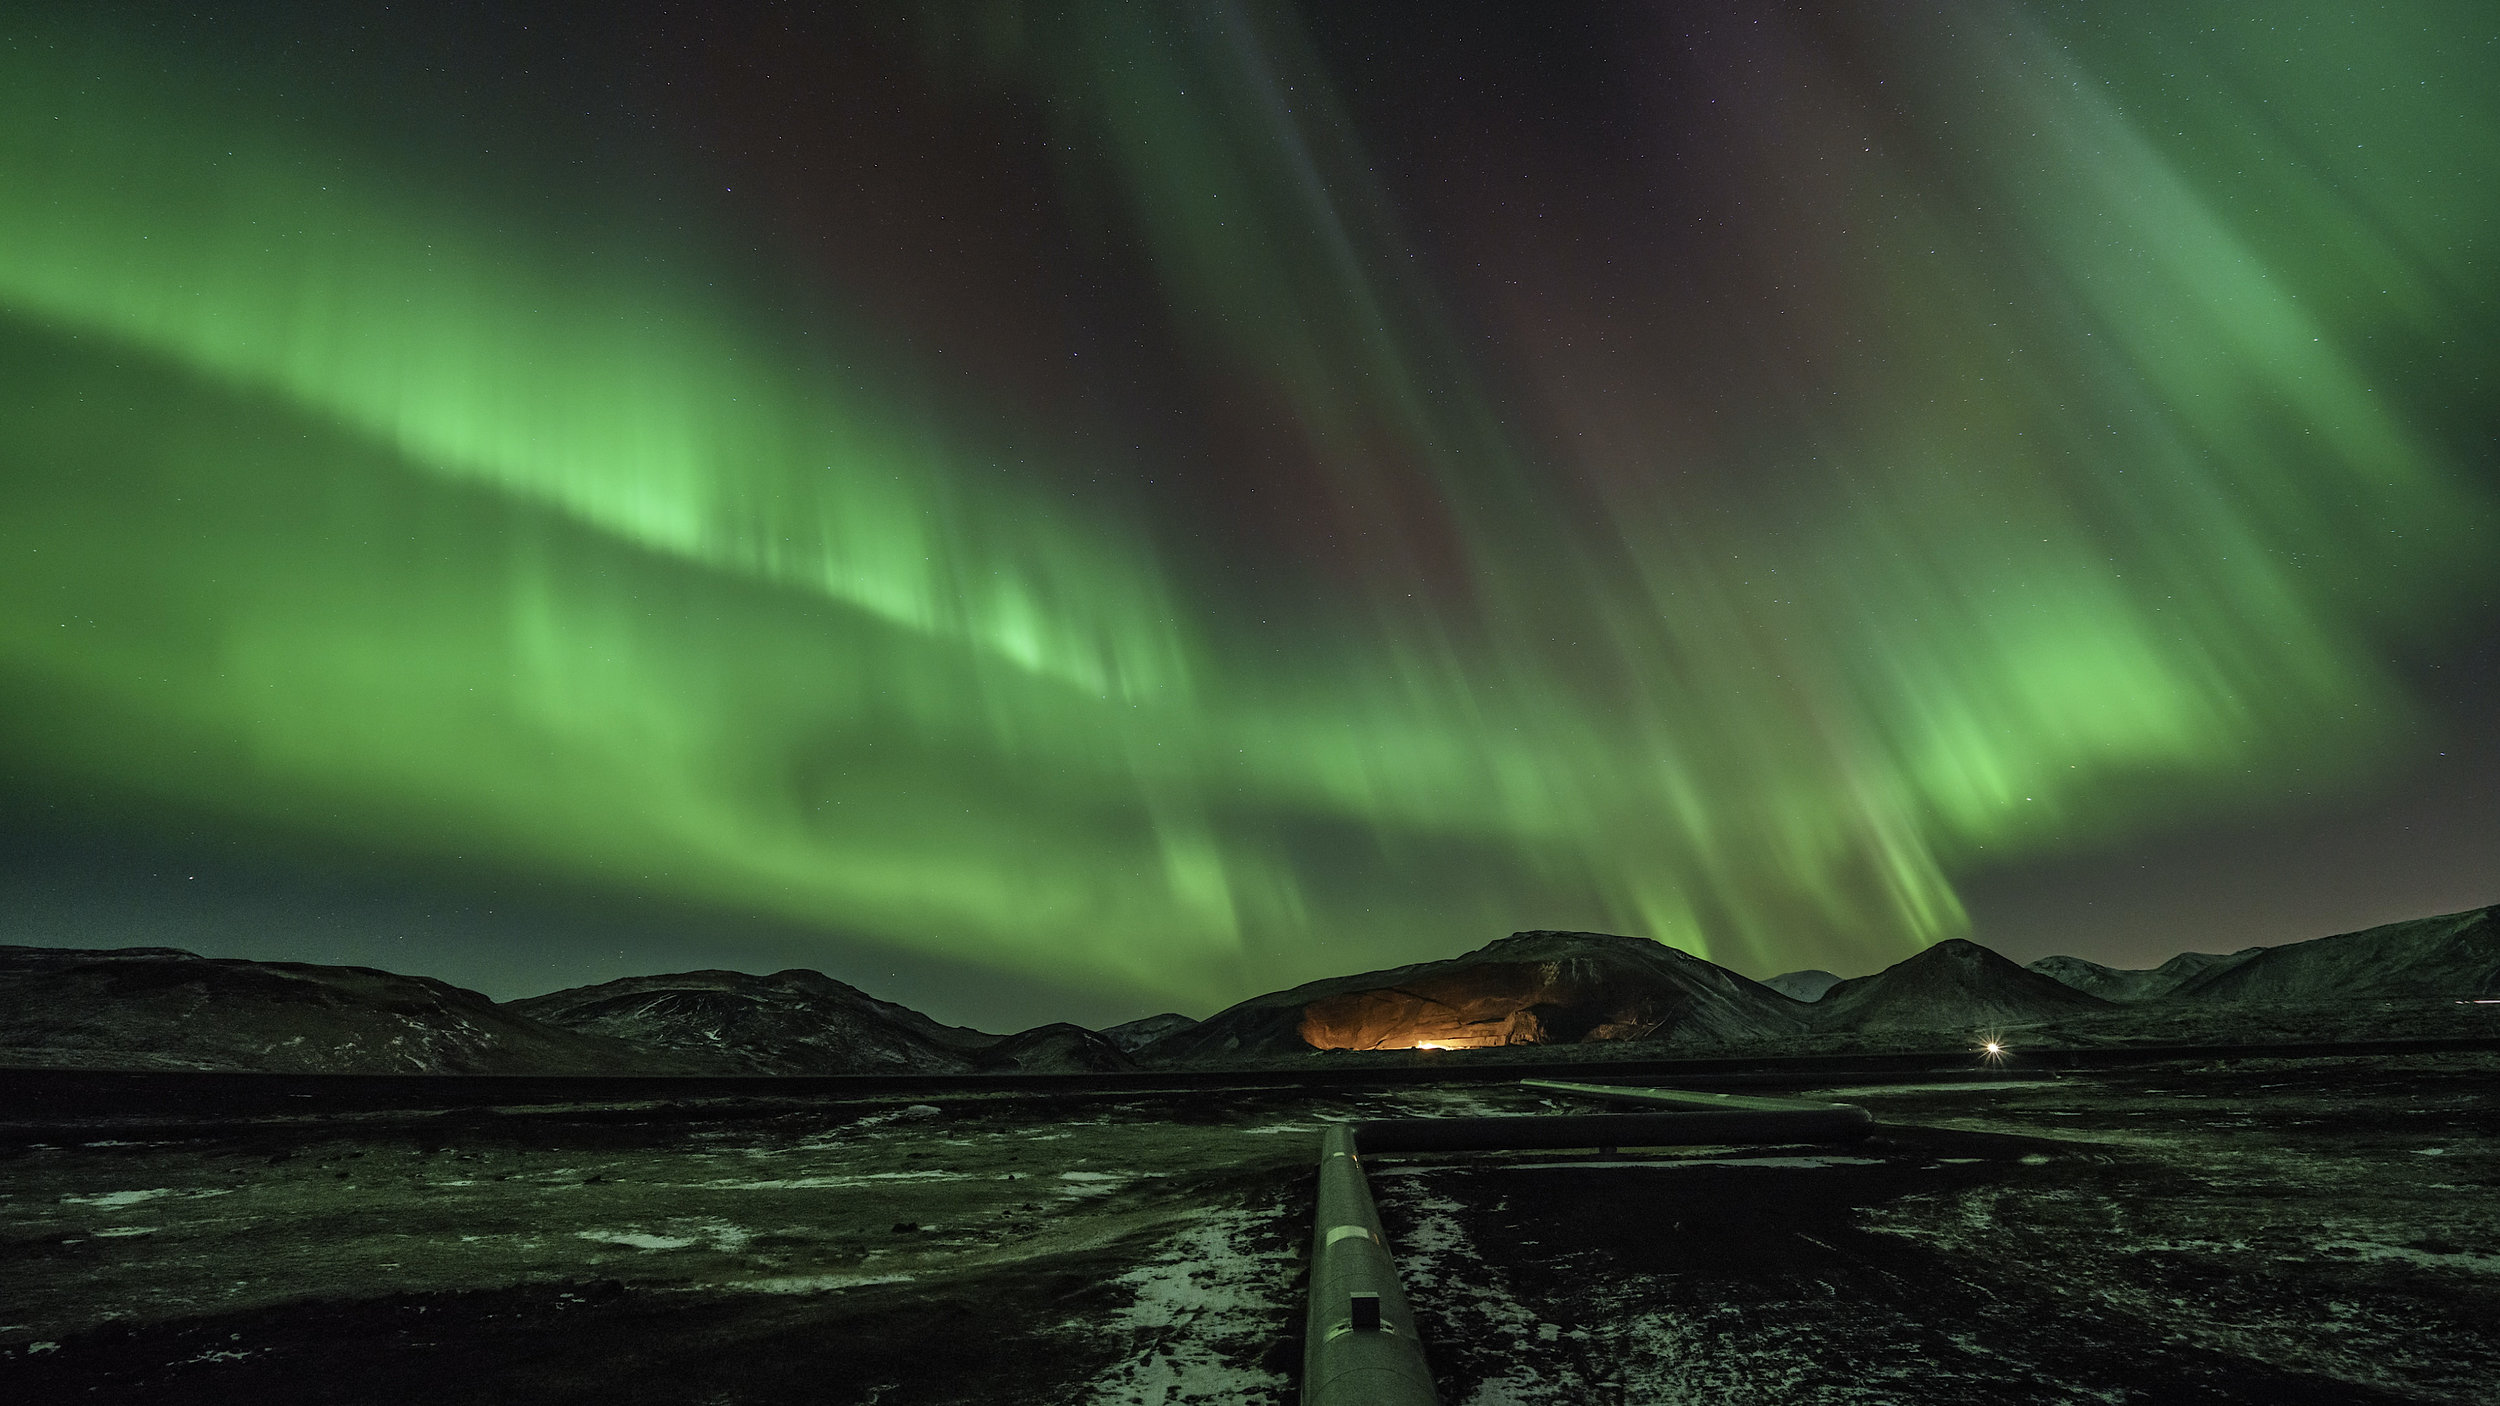 Essential Iceland & Northern Lights Offer - Winter getaway package with a Northern Lights Tour, Golden Circle Tour and a South Coast Tour.